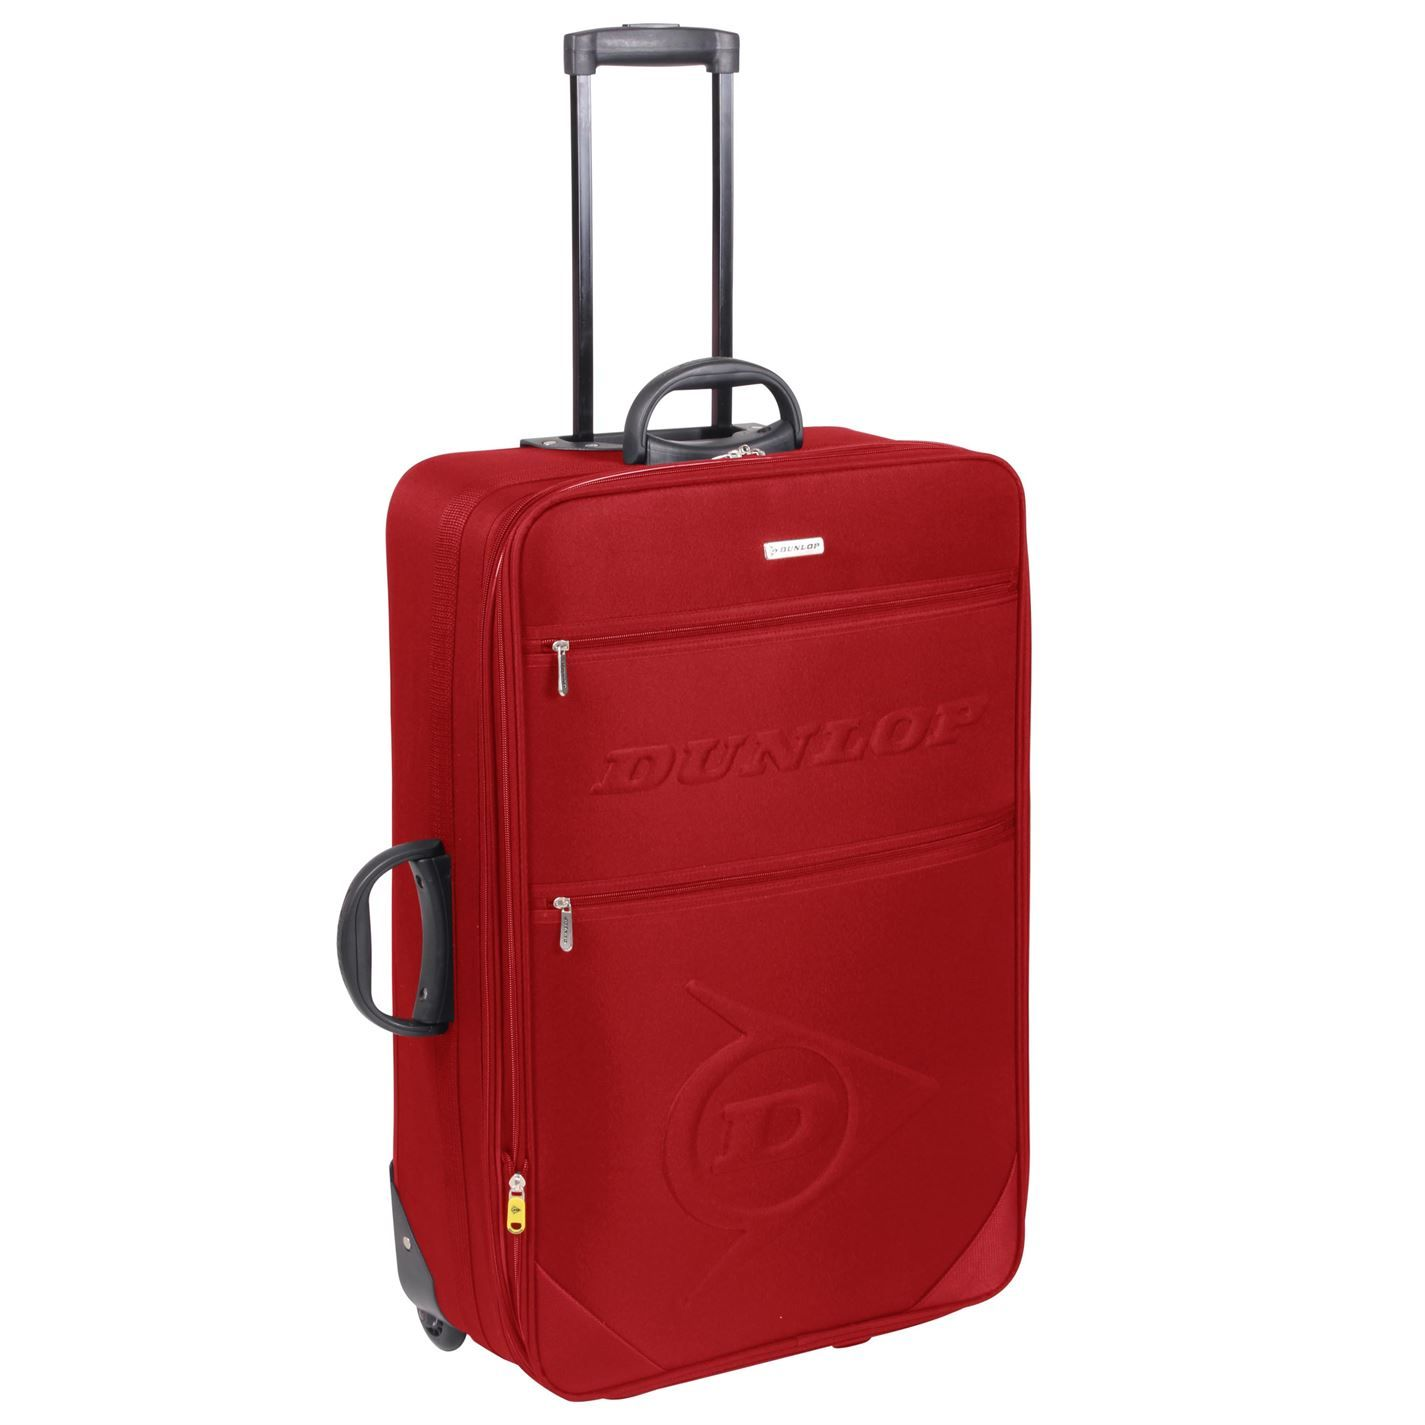 c6aa2d889741 Dunlop | Dunlop Red Suitcase | Luggage and Suitcases - sports direct. >  30in suitcase